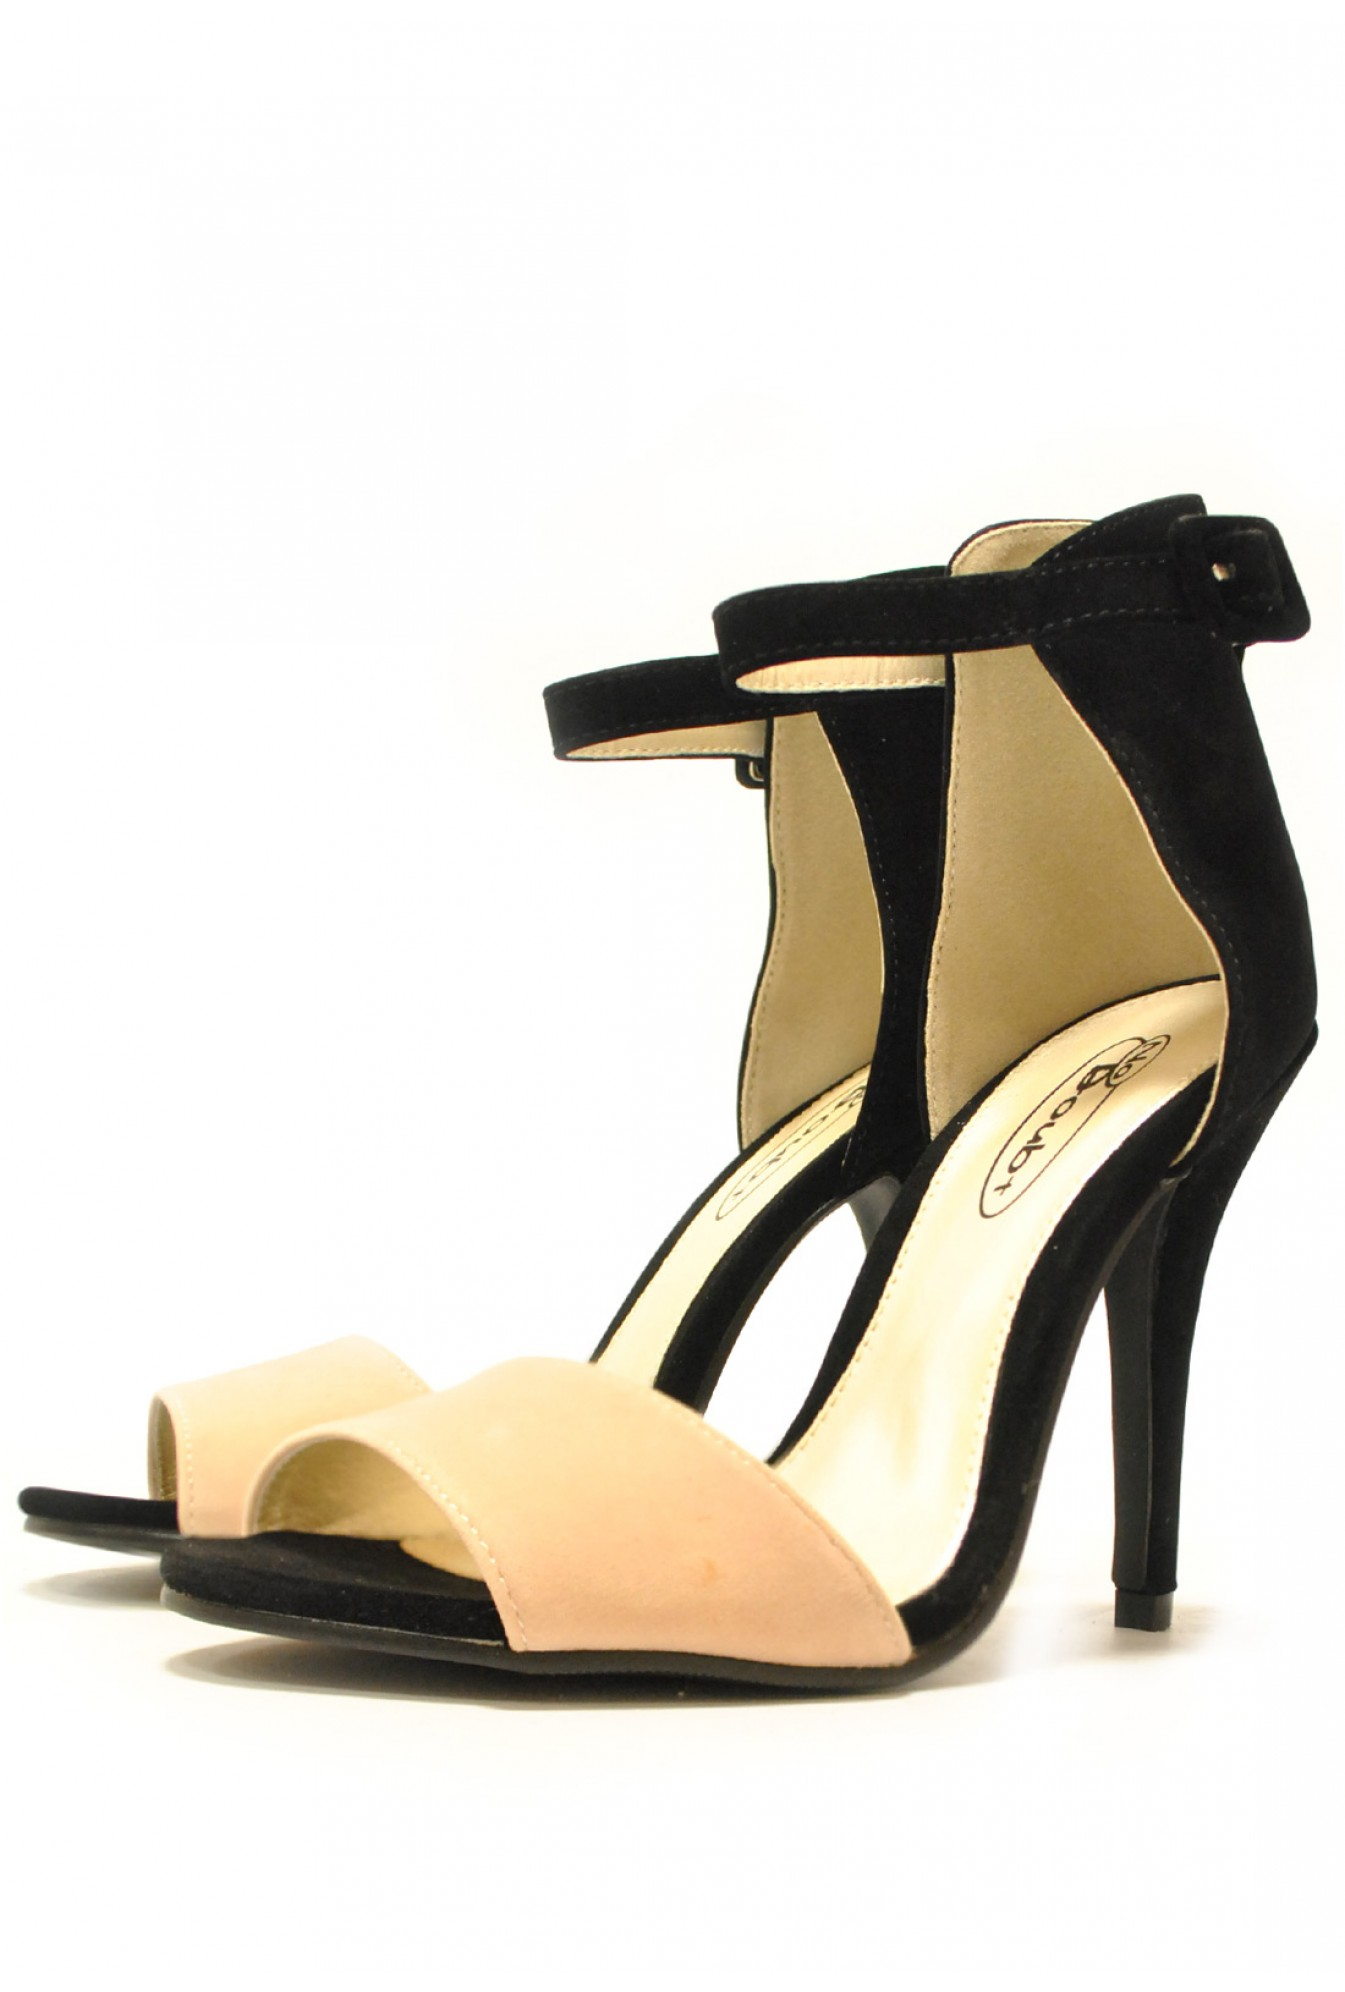 8949f6b7d9a7 More Views. Gina Tri Colour Mid Heel Sandals in Black and Cream